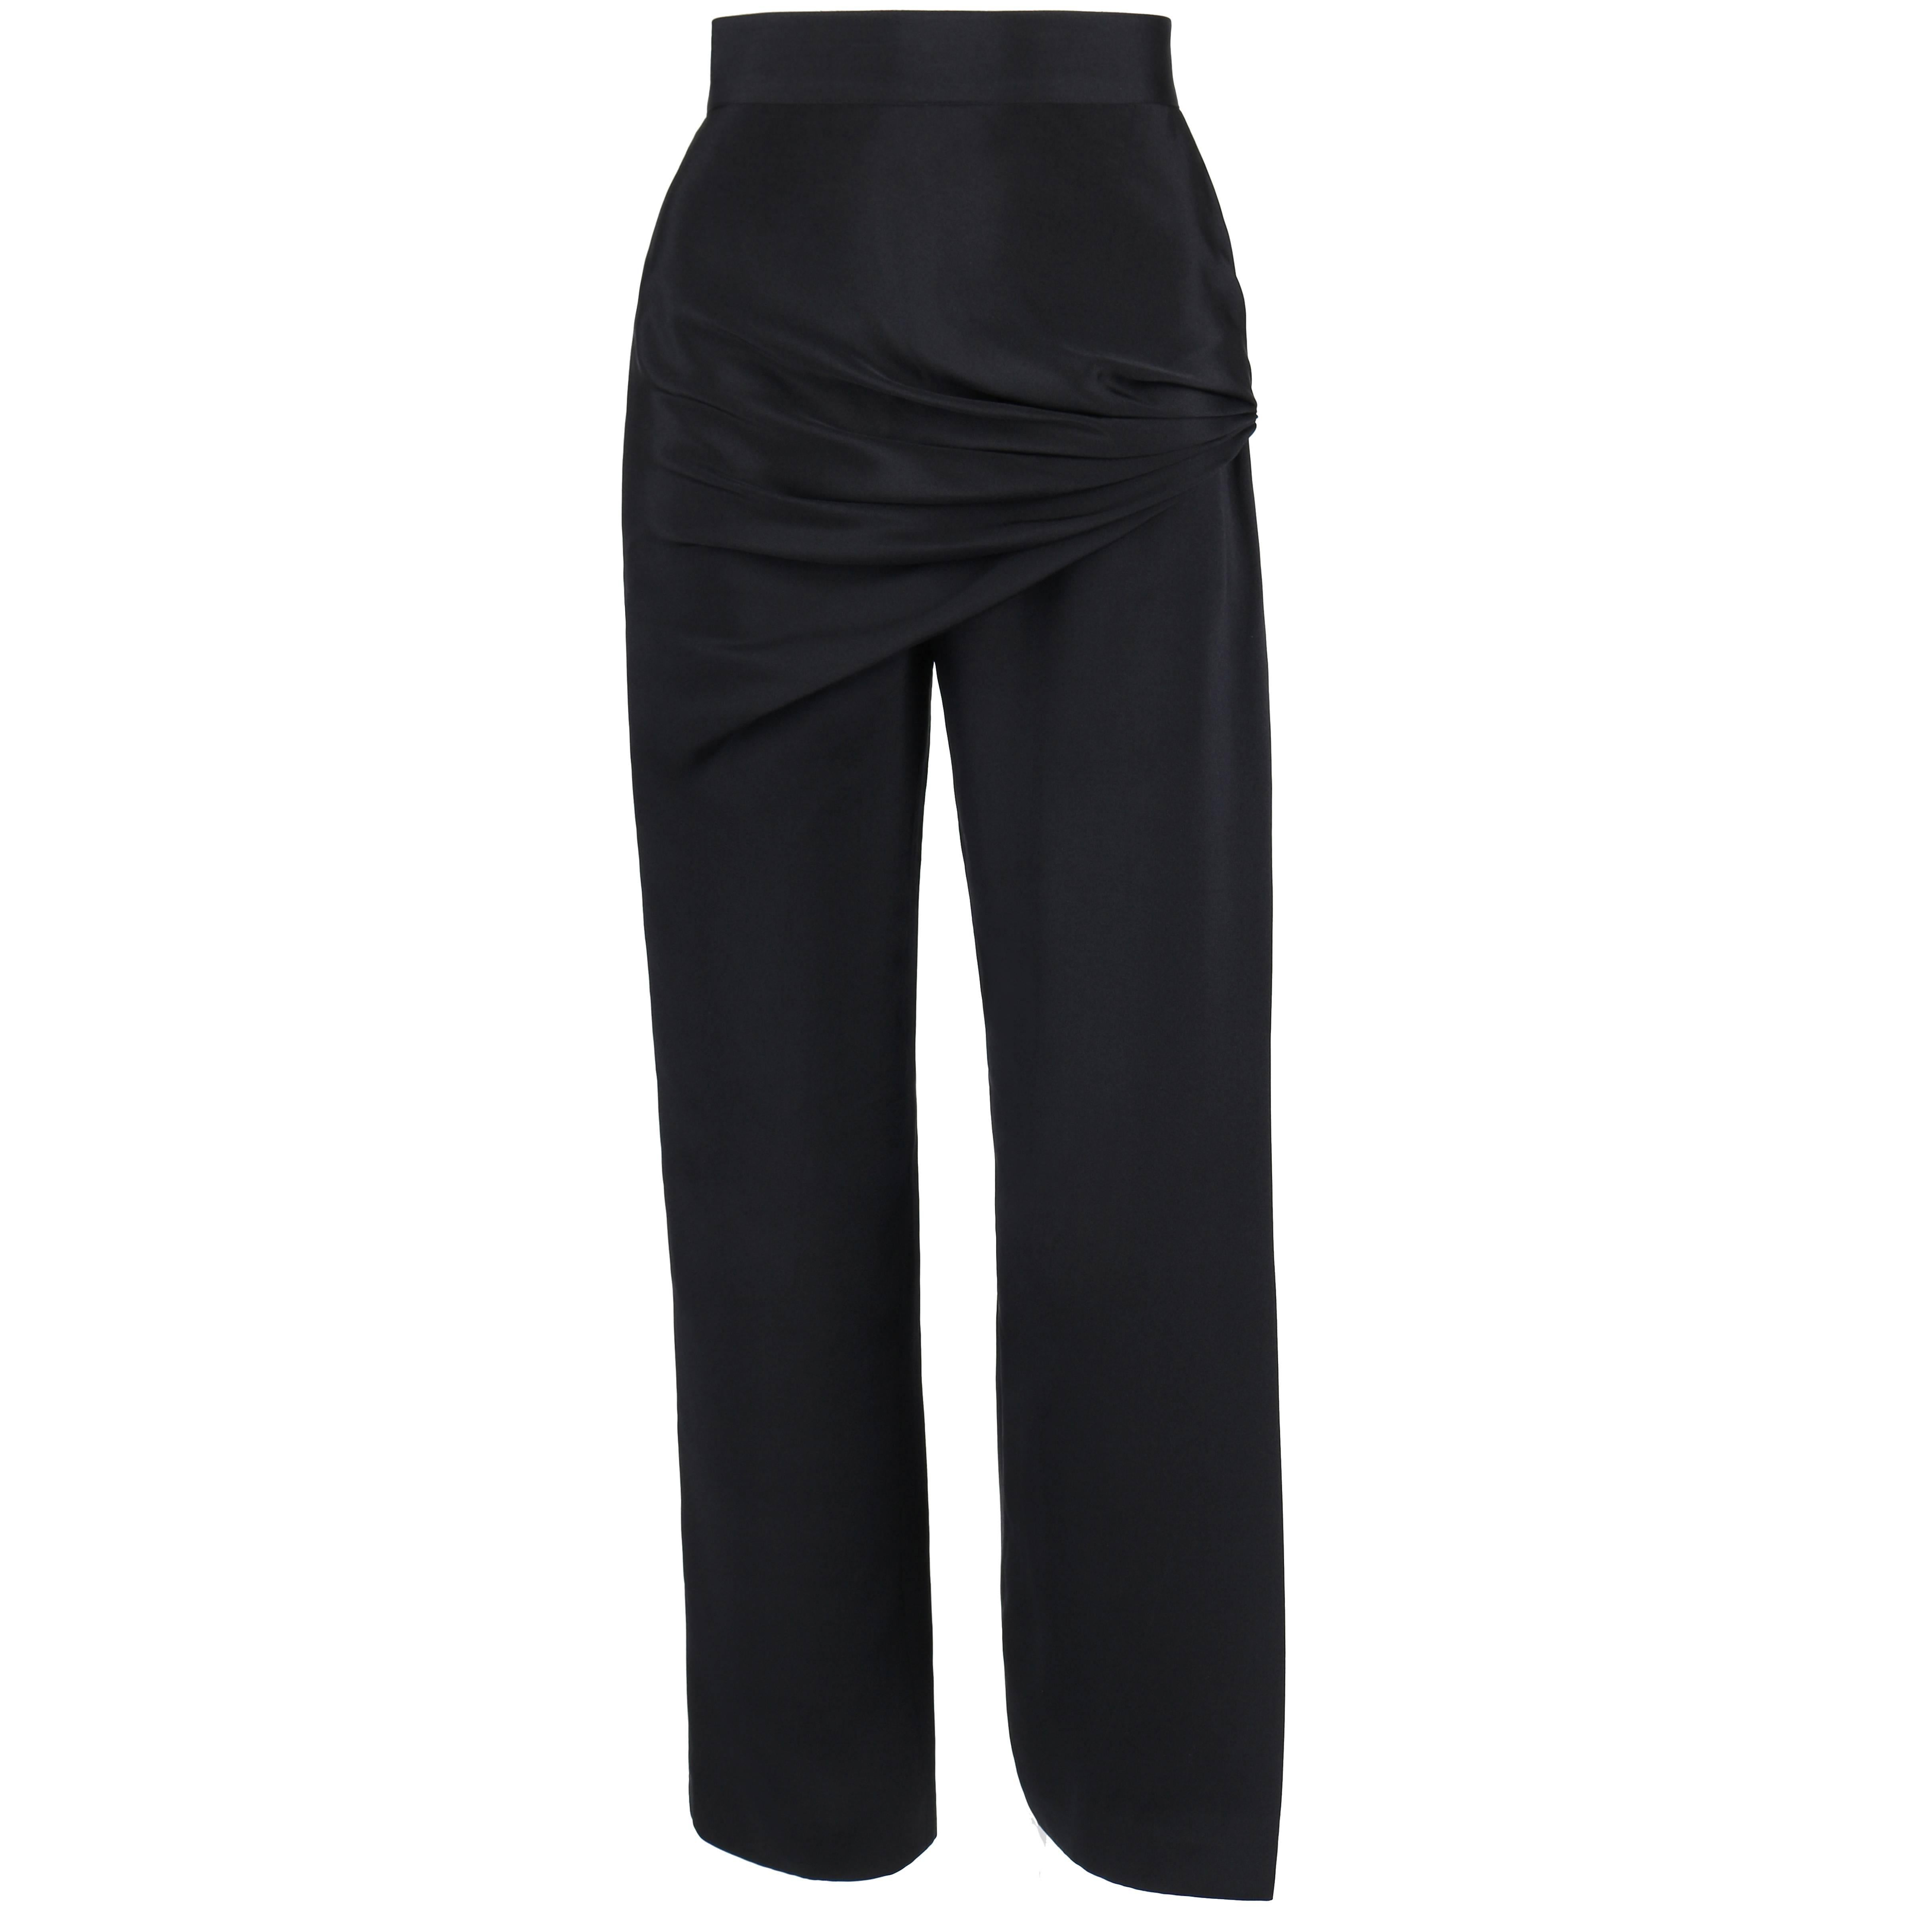 946c6a1d Gianni Versace Vintage 1980s 80s Gray Wool Pleated Pants or Trousers